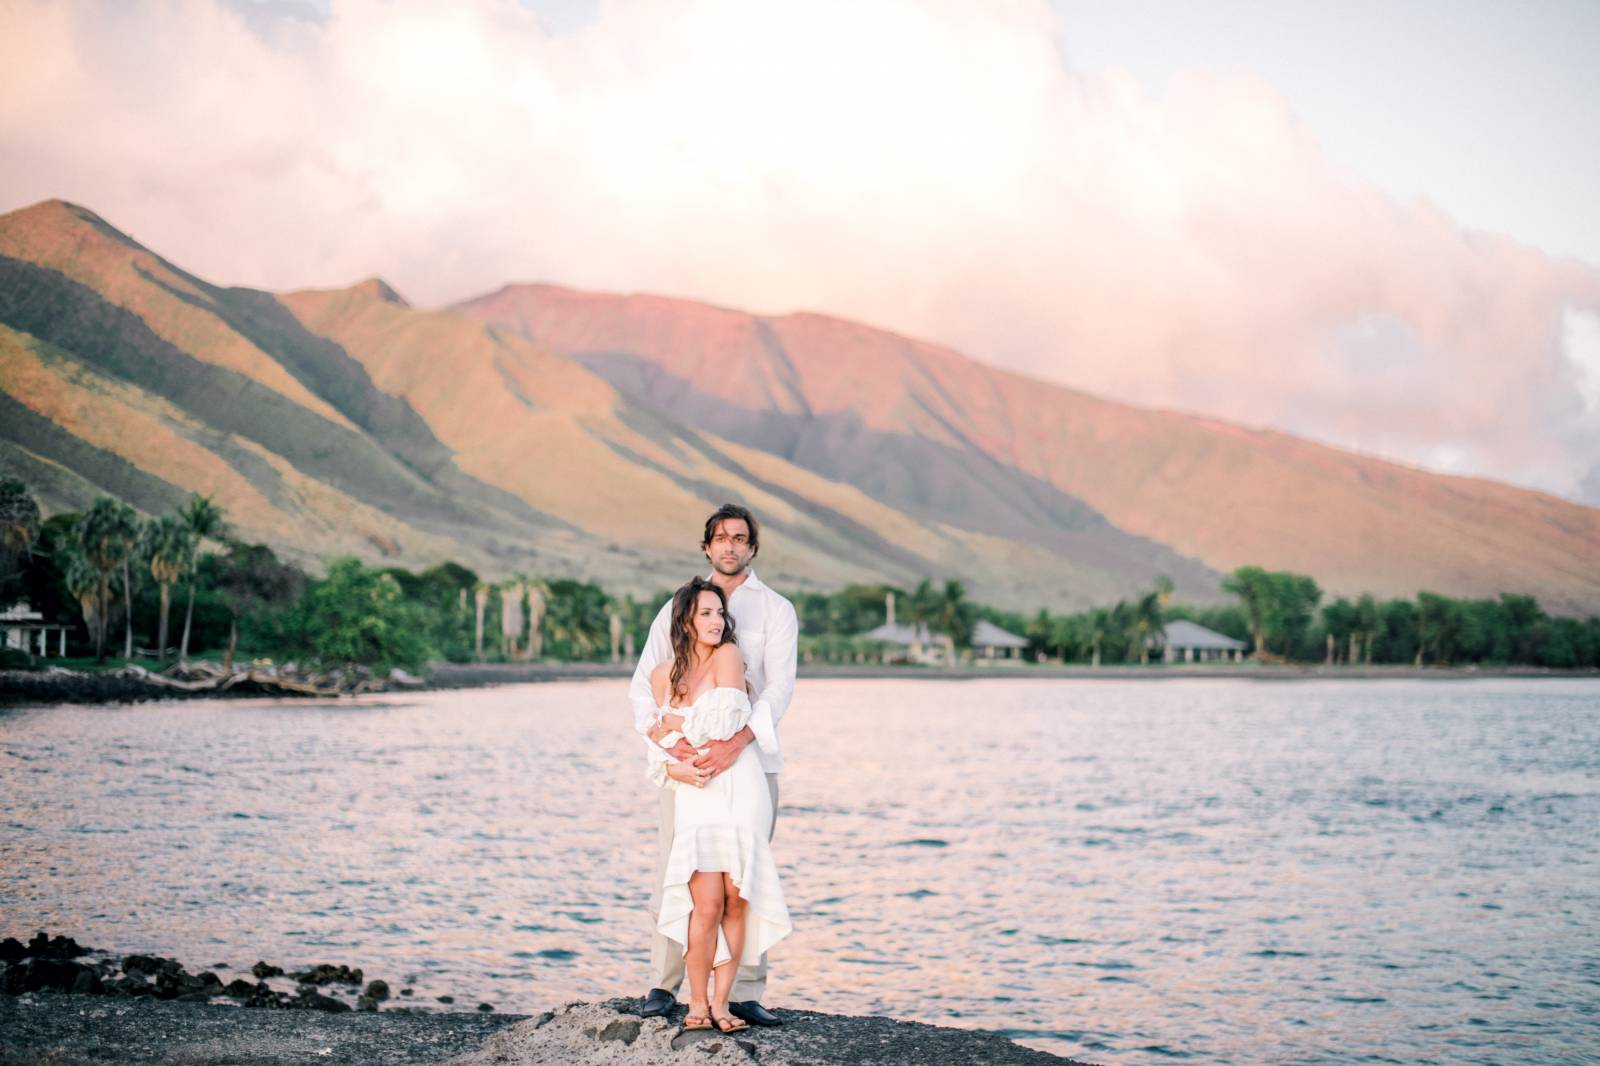 Maui honeymoon portraits